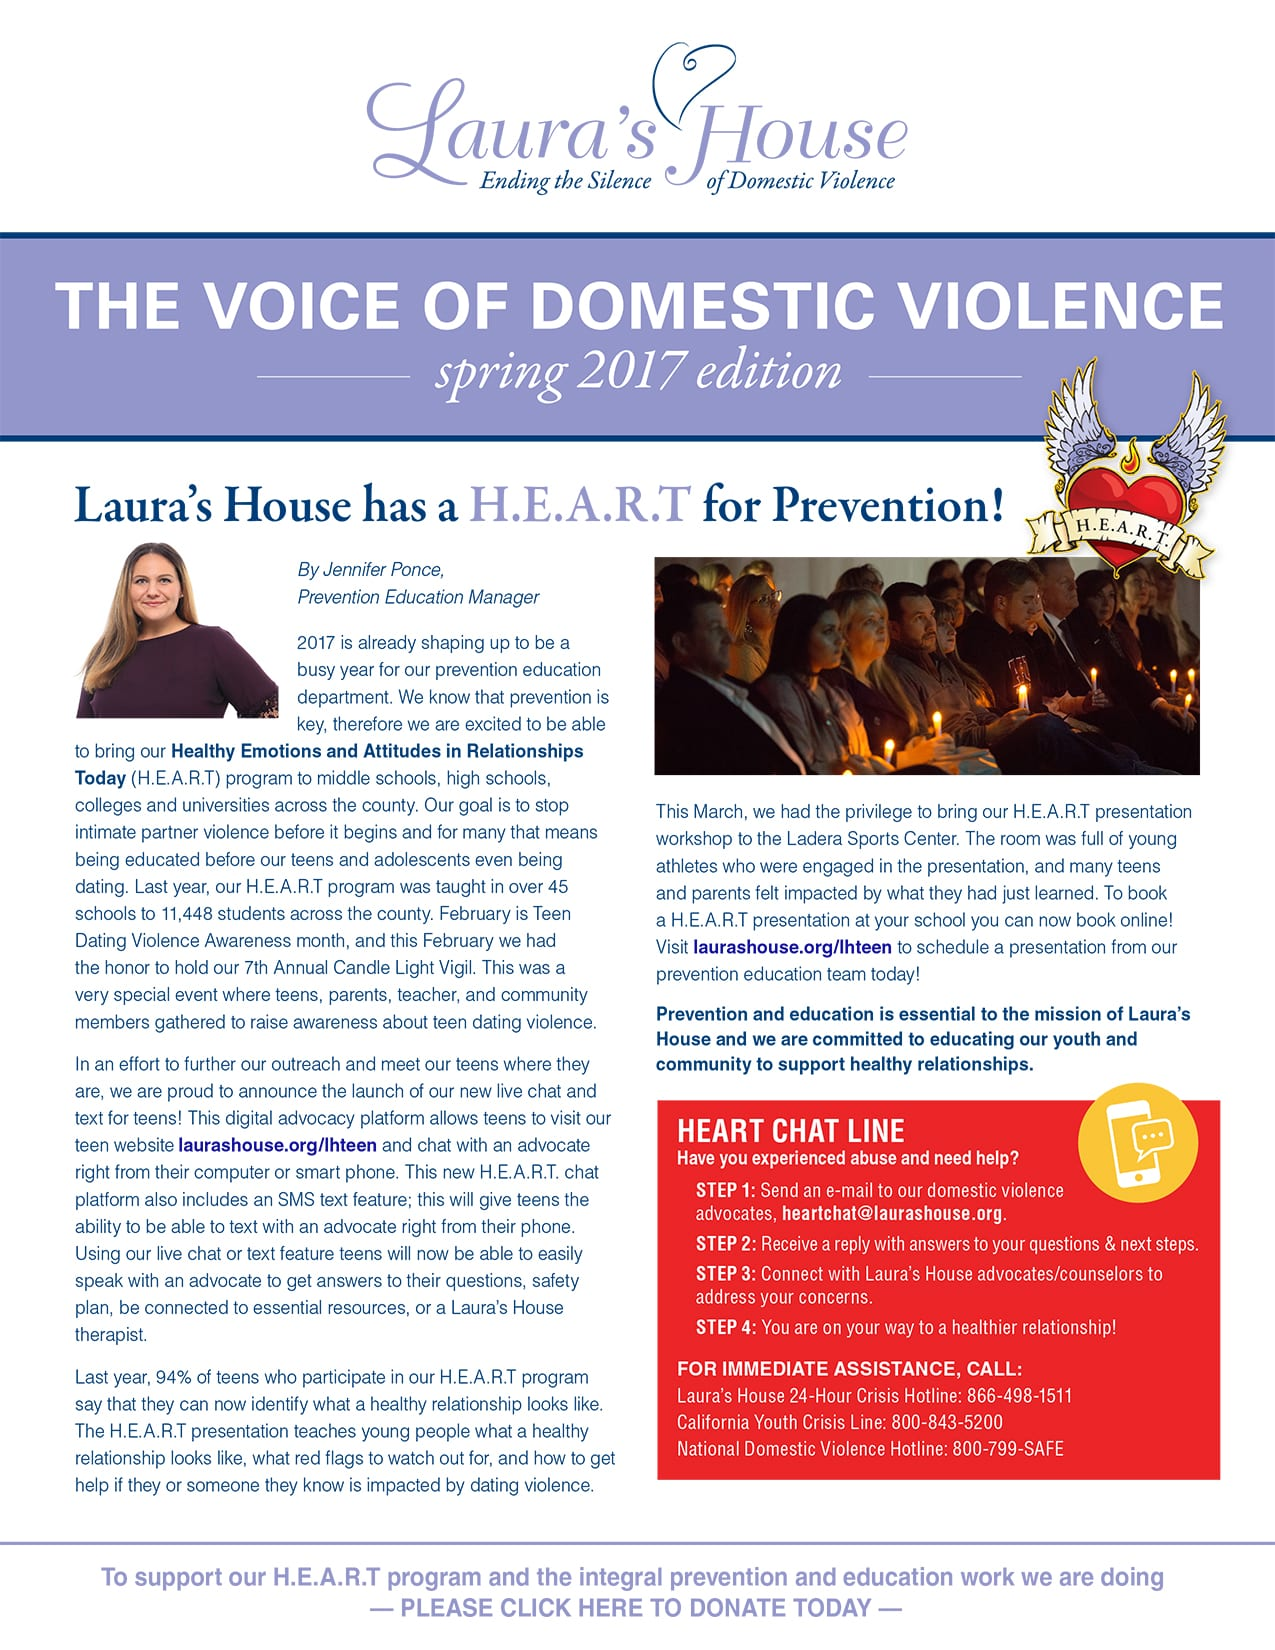 The Voice of Domestic Violence - Spring 2017 edition